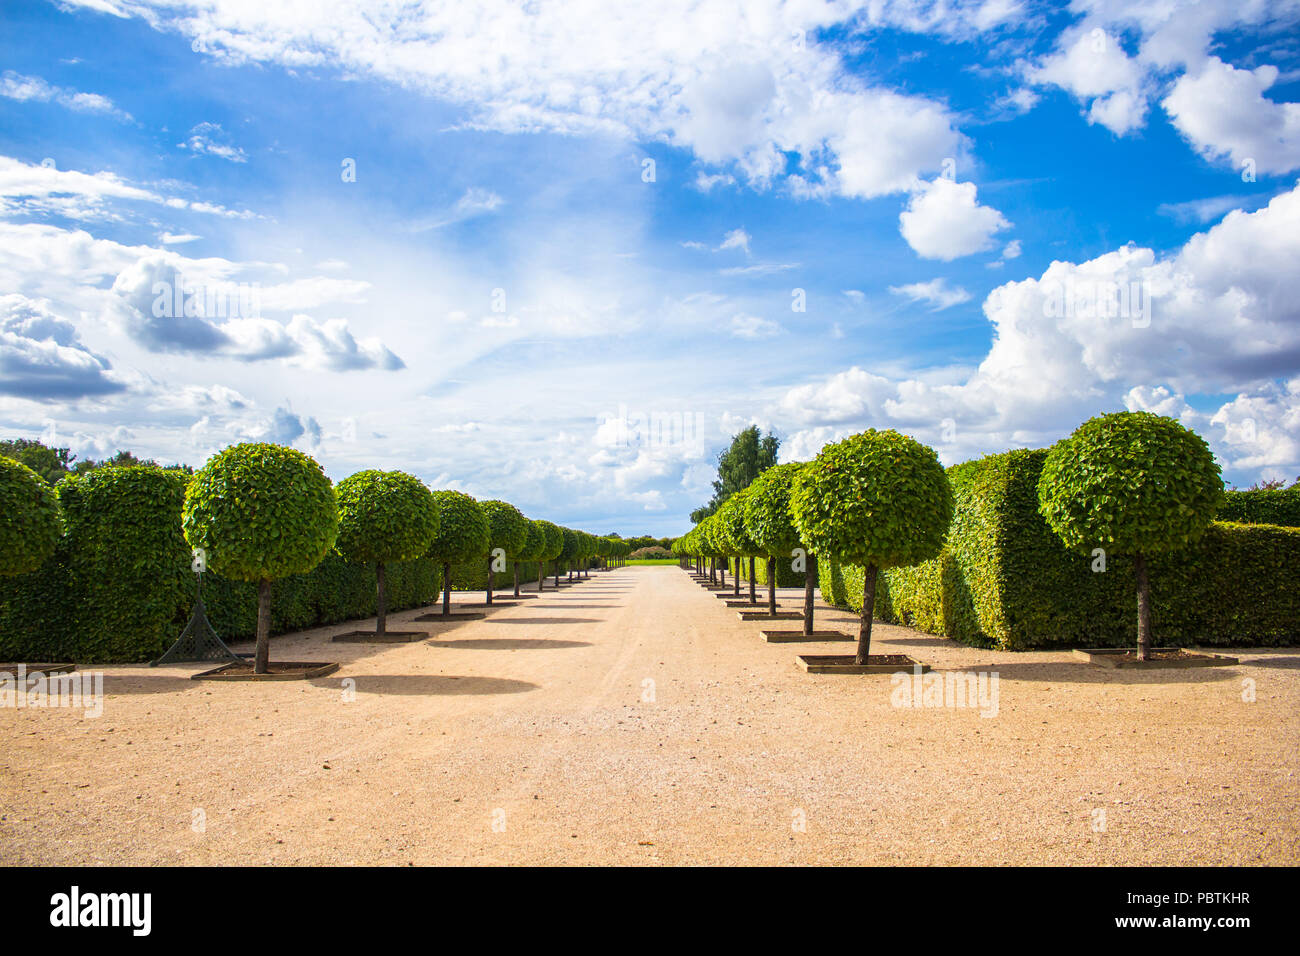 Park of Rundale palace - Stock Image